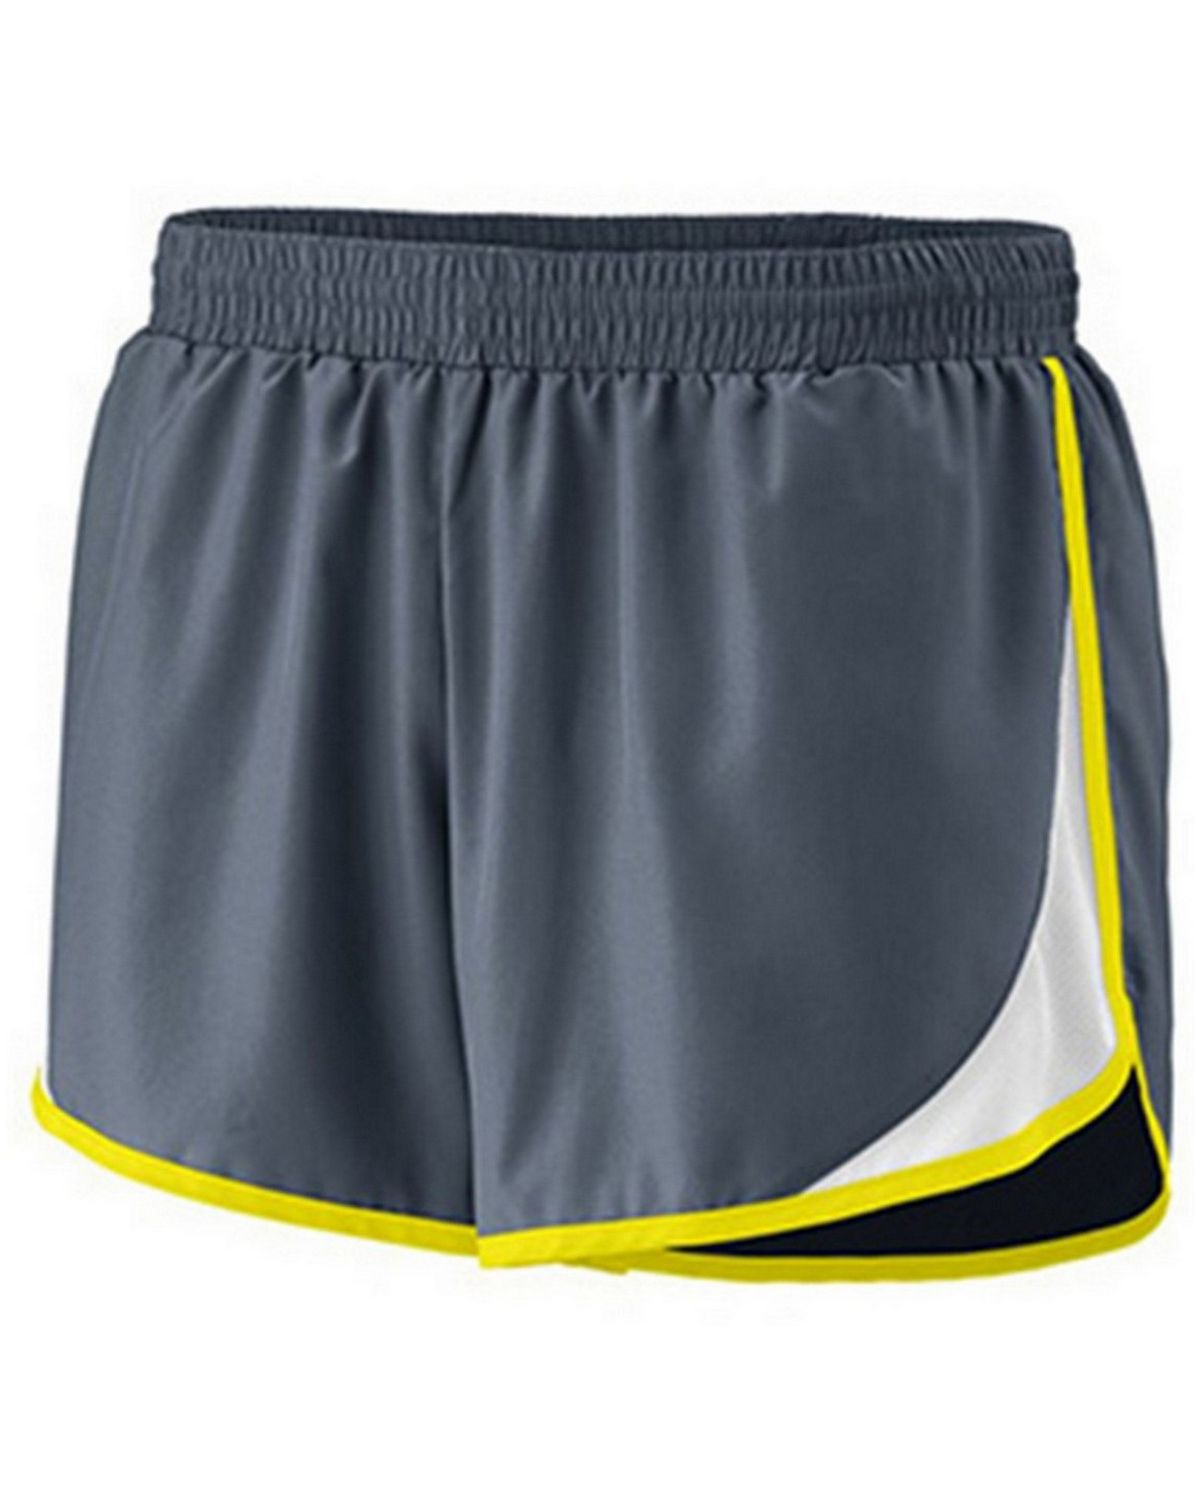 Augusta Sportswear 1267A Ladies Junior Short - Graphite/ White/ Power Yellow - XL 1267A